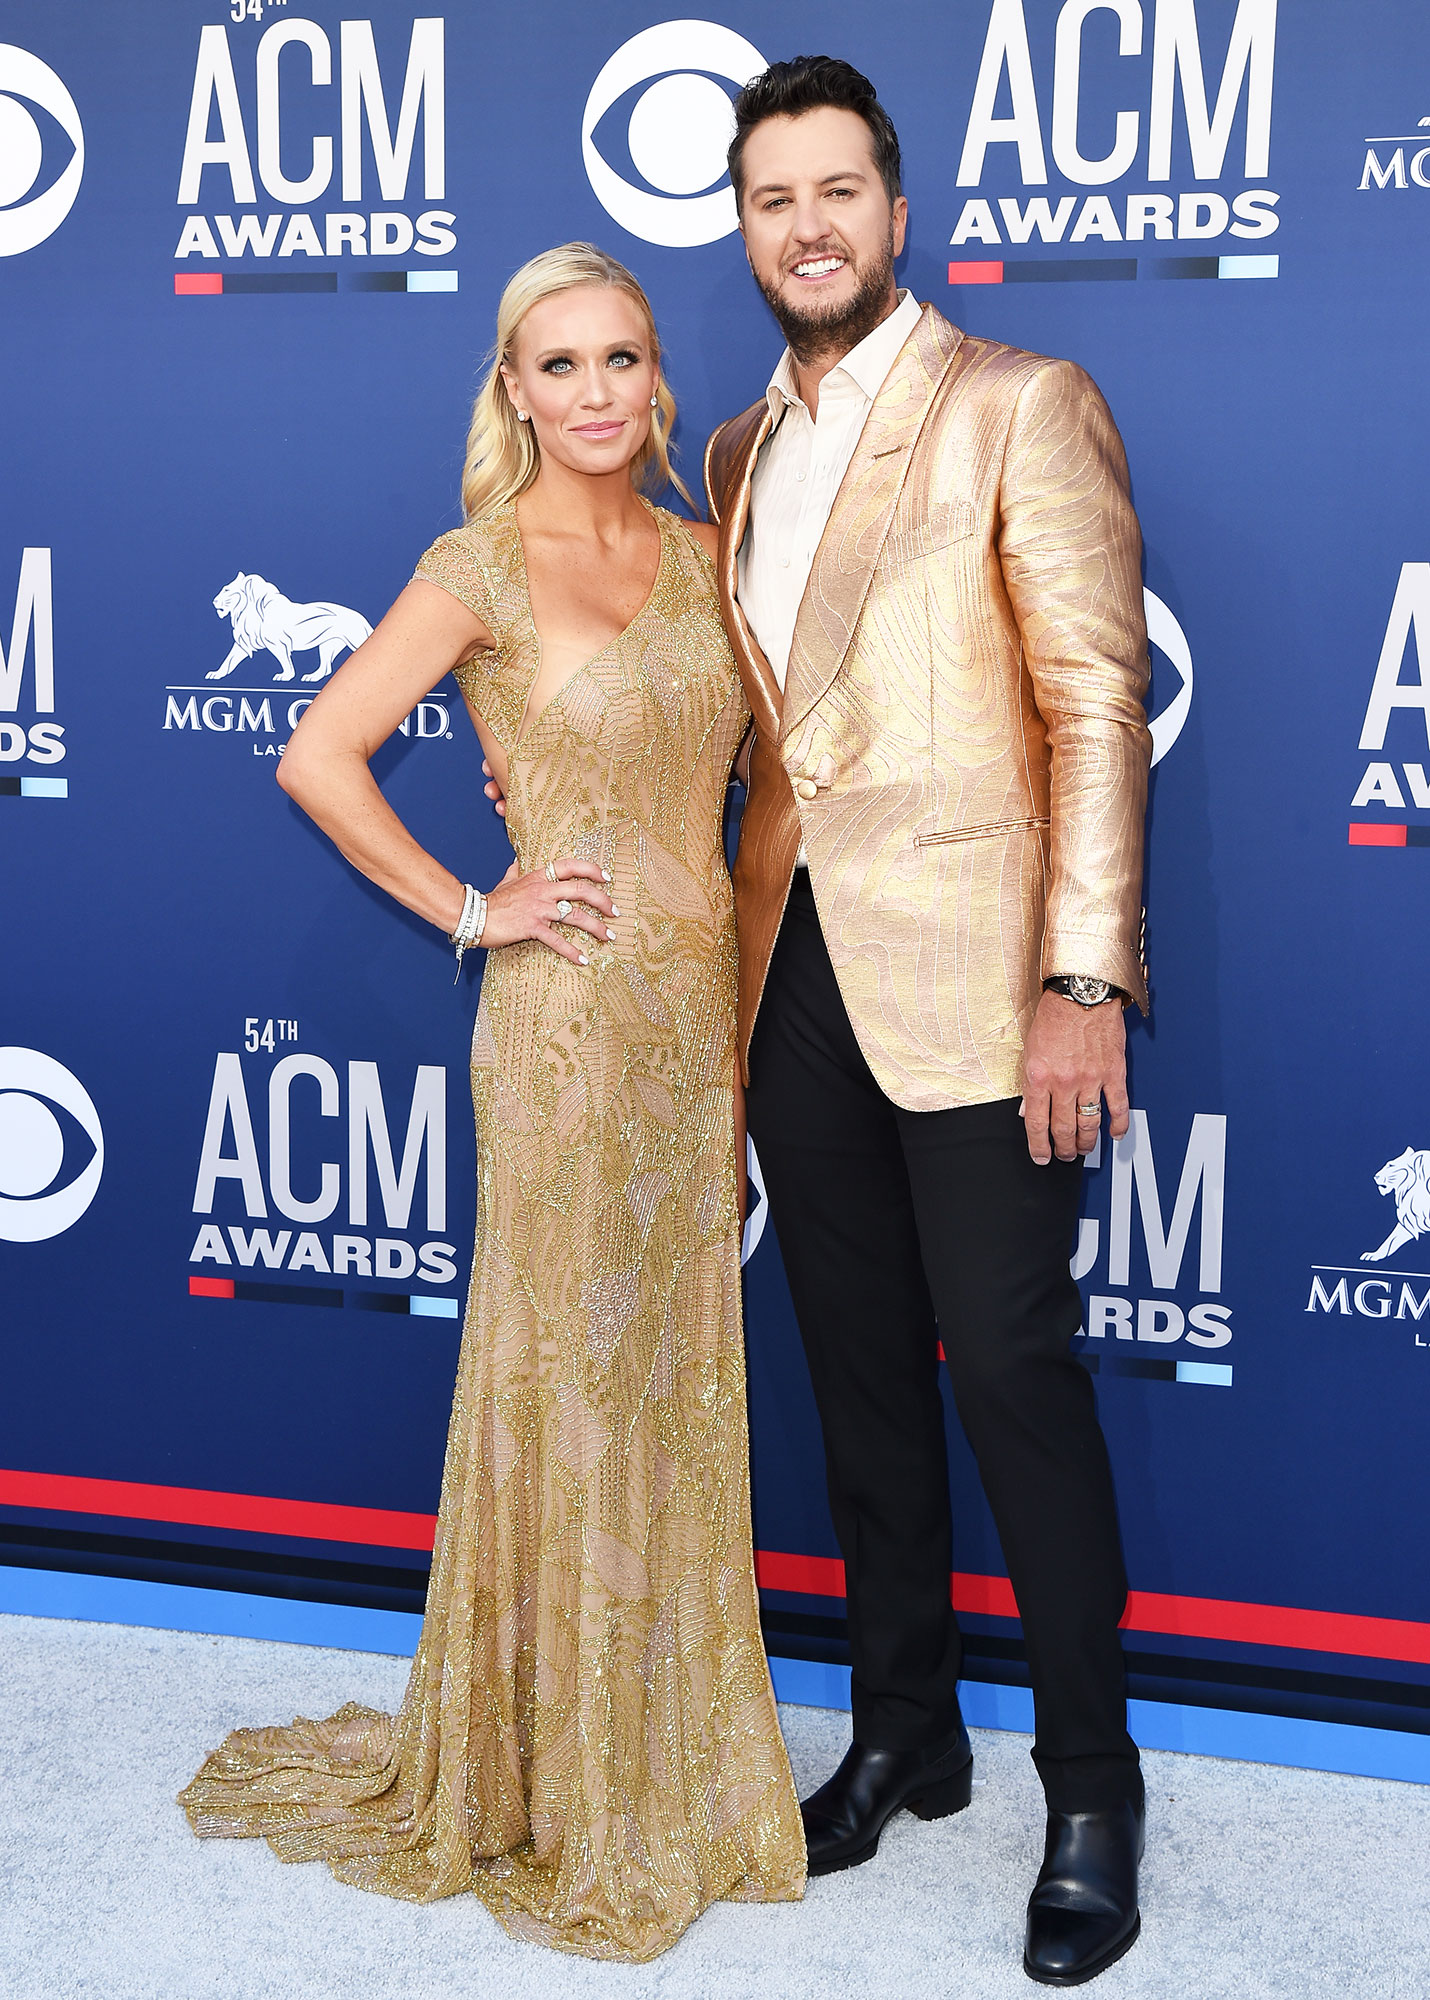 Caroline Boyer and Luke Bryan Smoking Hot Couples Style at the ACMs - The husband and wife duo were going for the gold in their matching metallic looks.